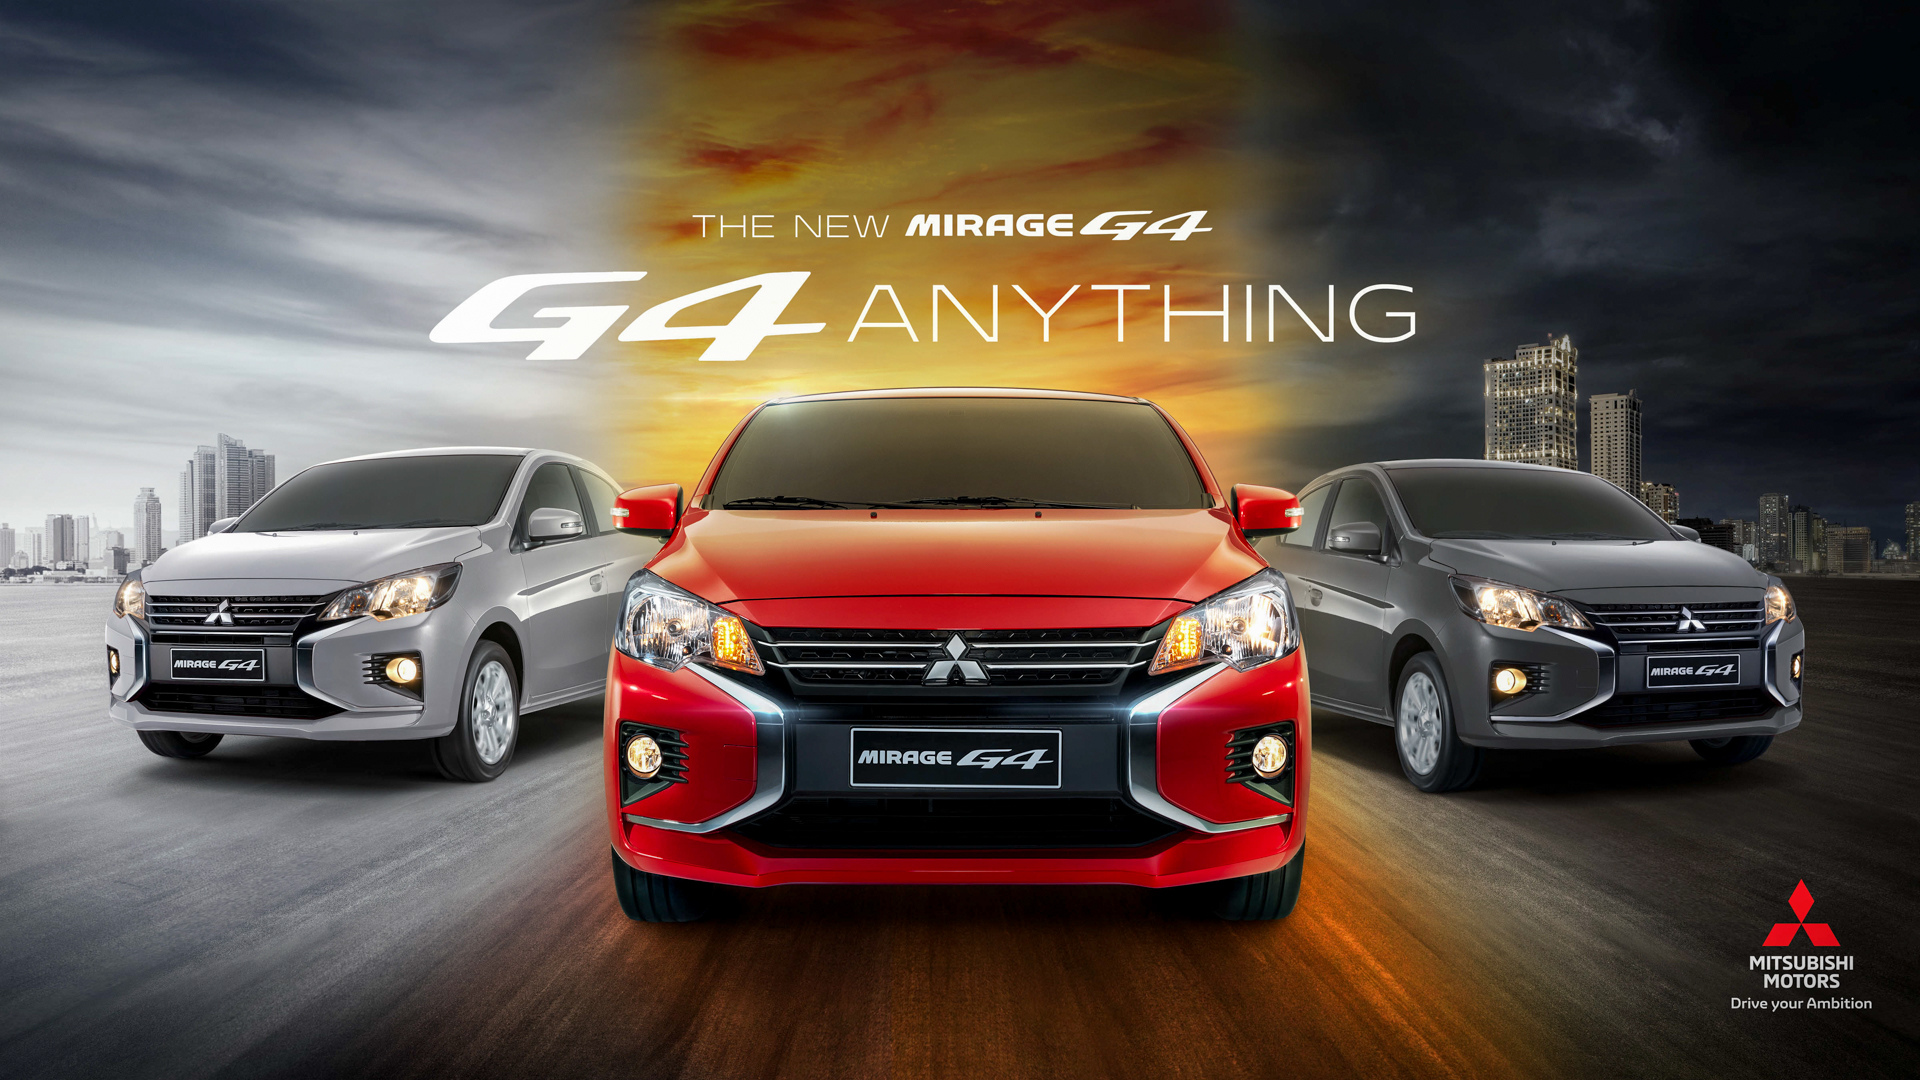 MMPC officially launches the new Mirage G4